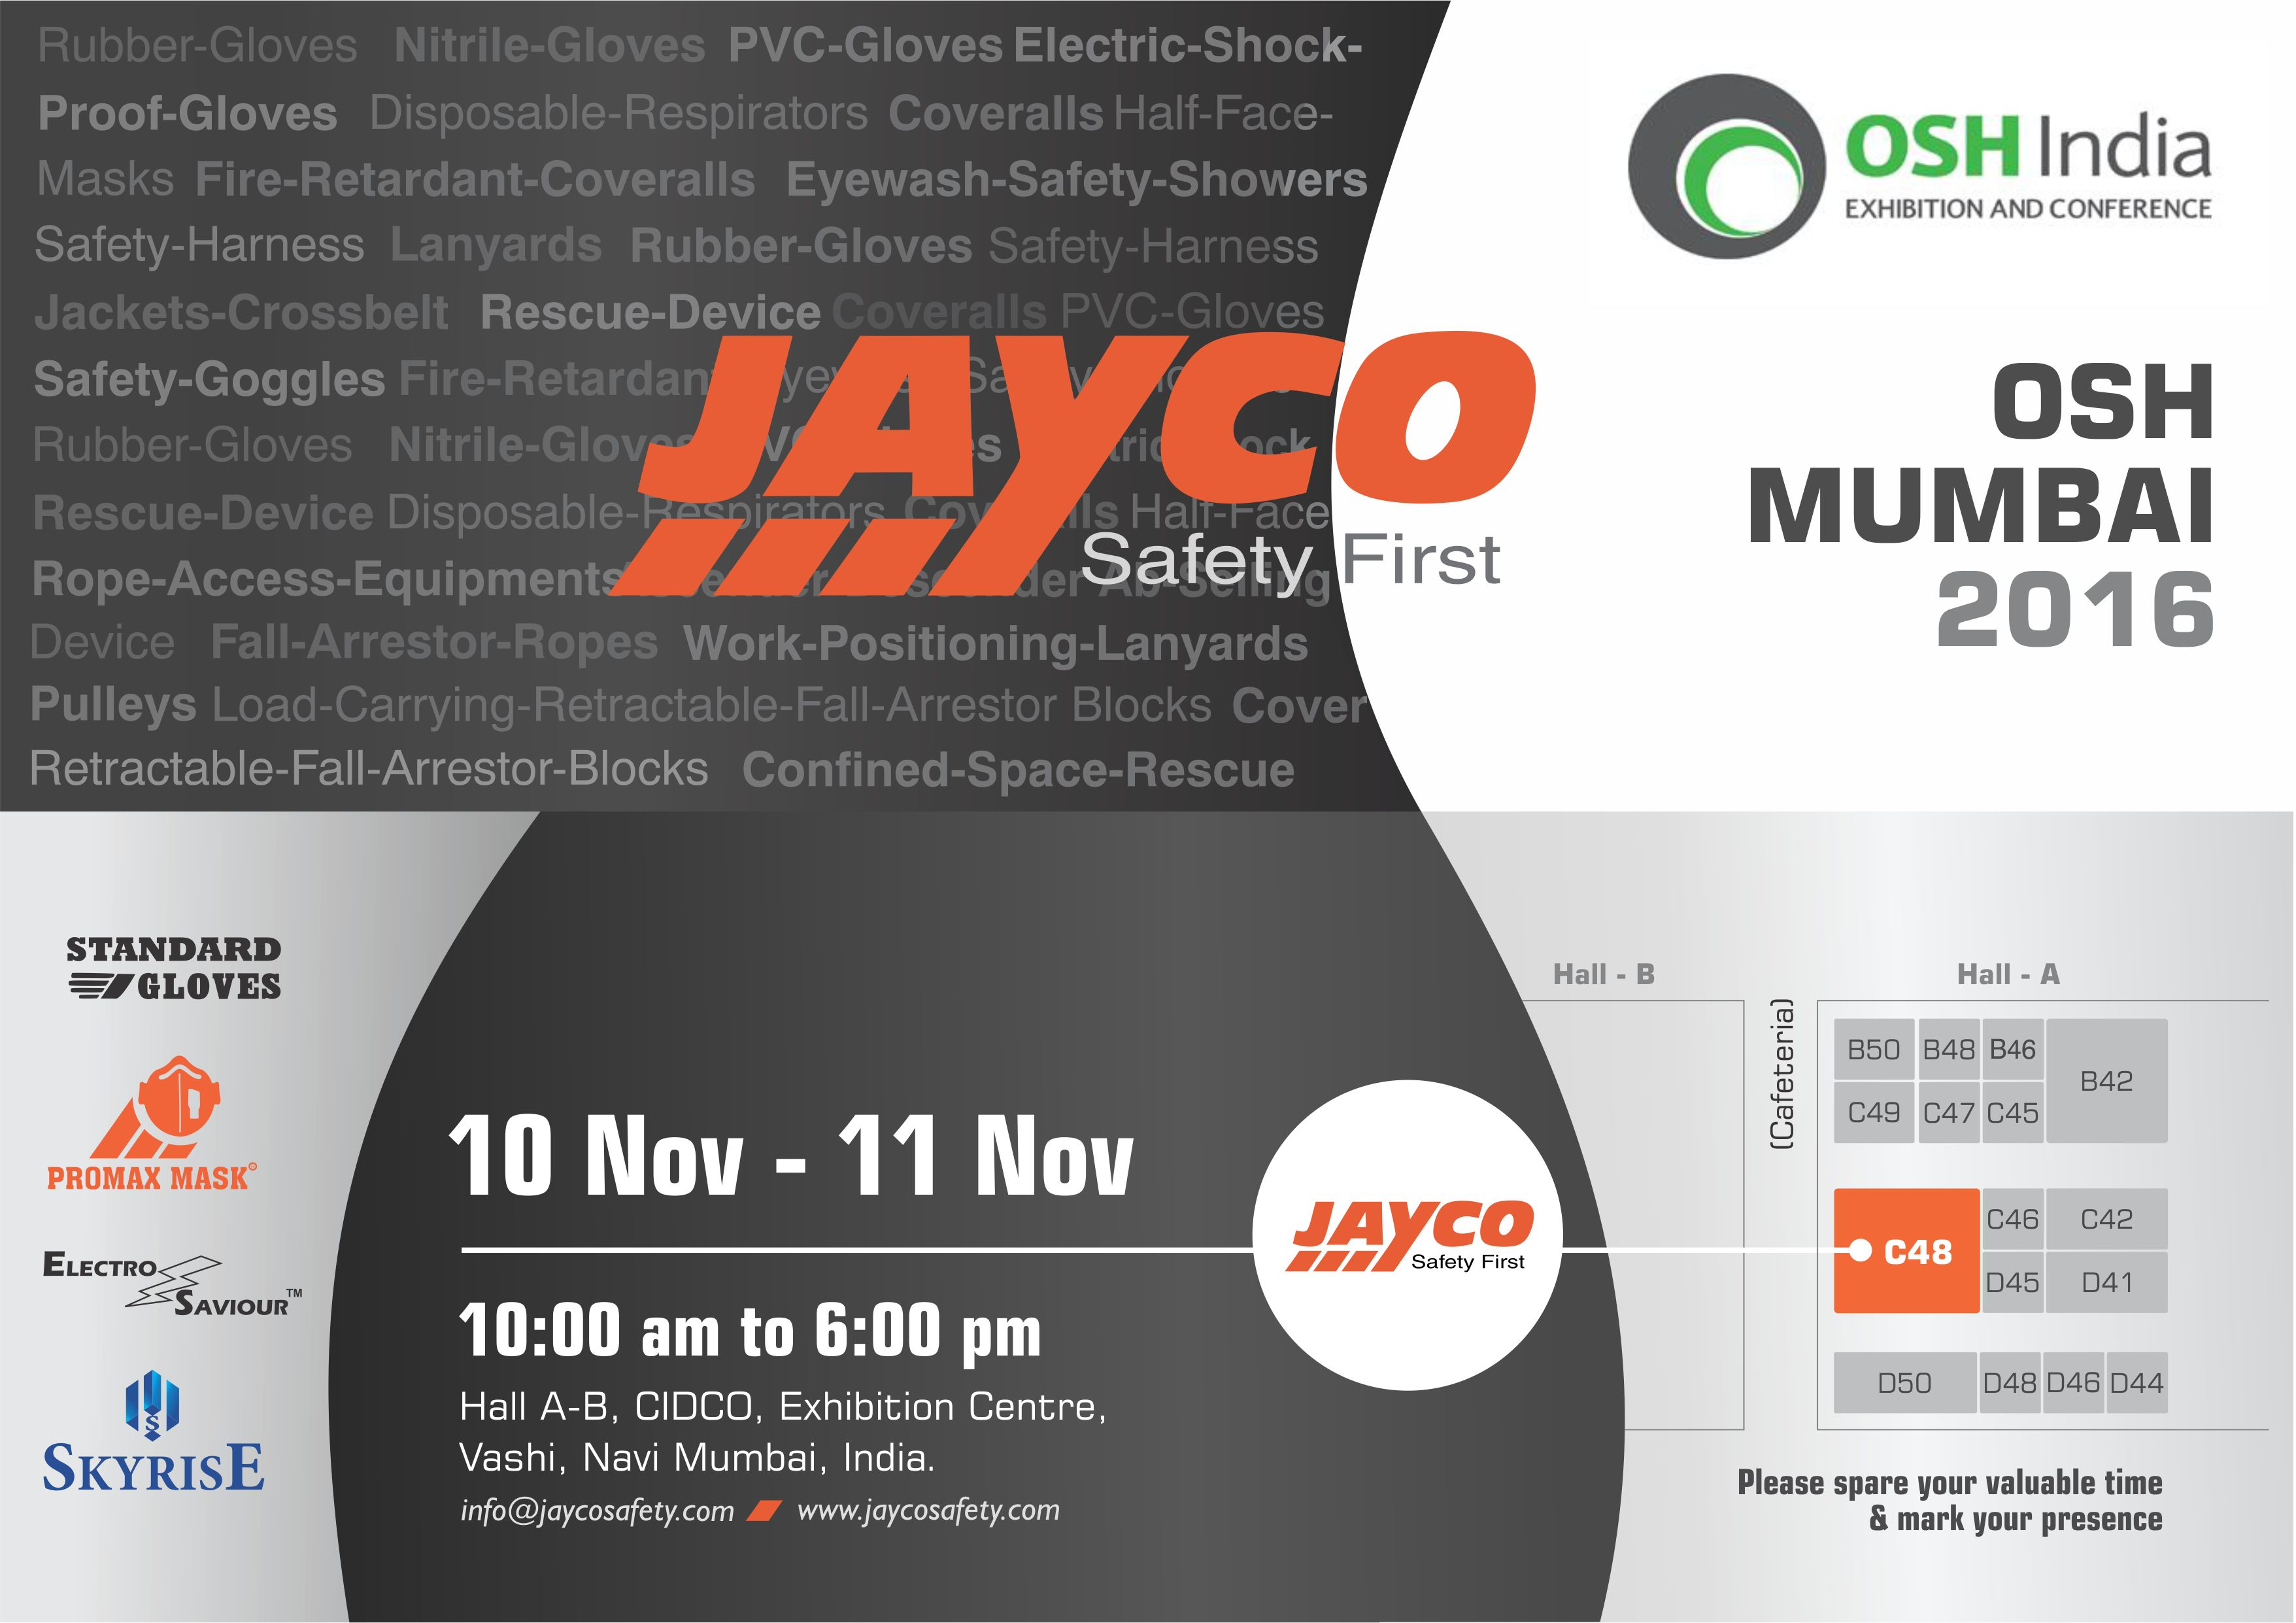 Jayco safety products pvt ltd visit us at hall a stall no c48 at the osh india 2016 mumbai at cidco exhibition centre vashi navi mumbai stopboris Choice Image